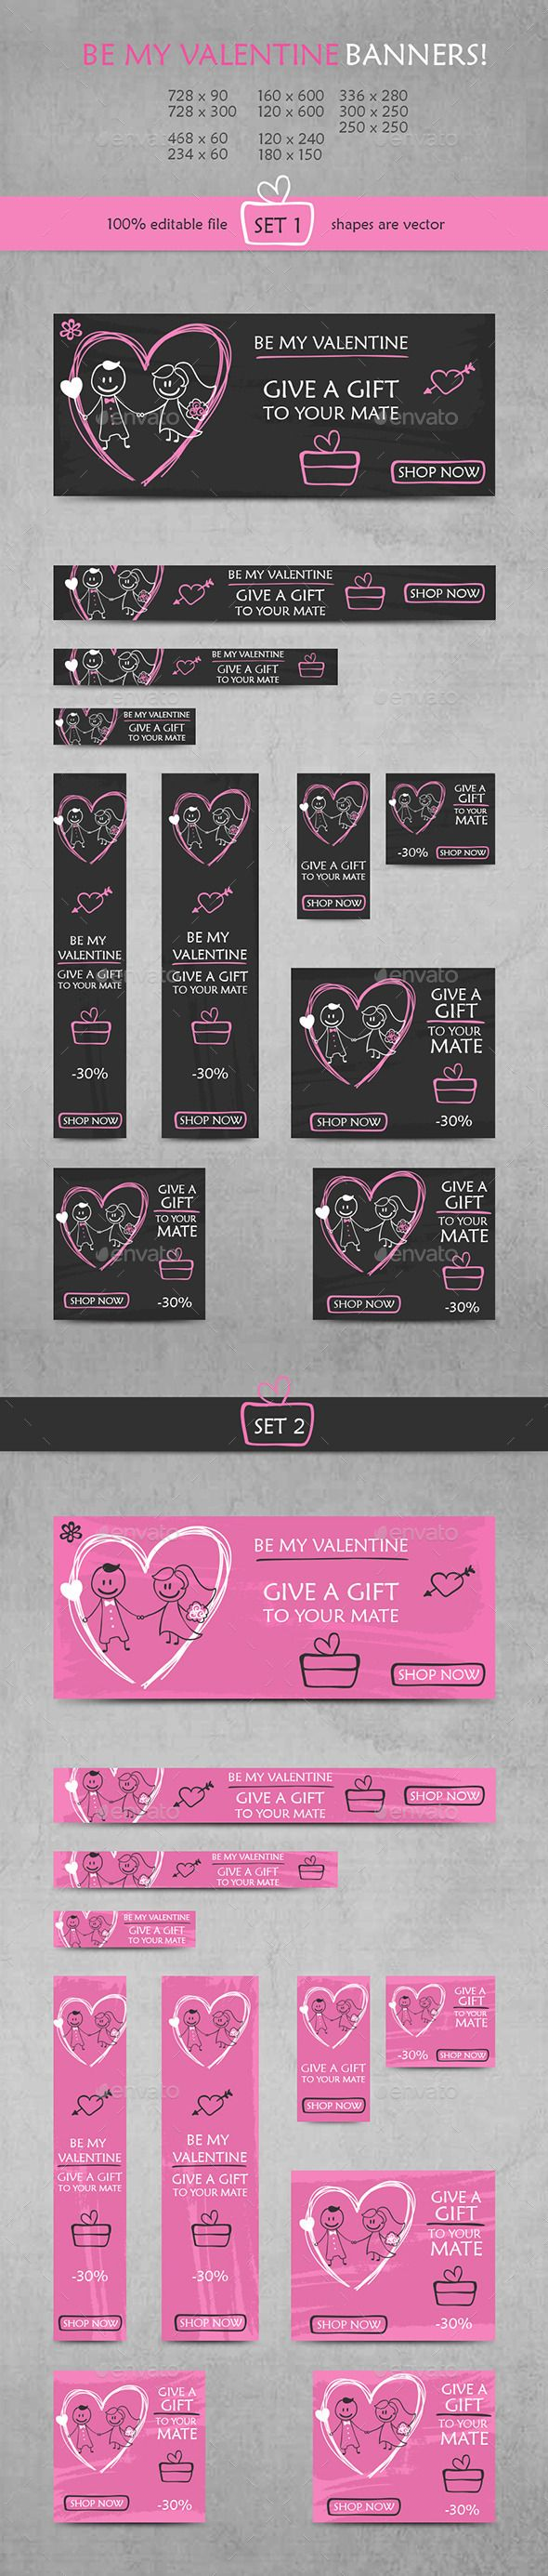 Be My Valentine Banners